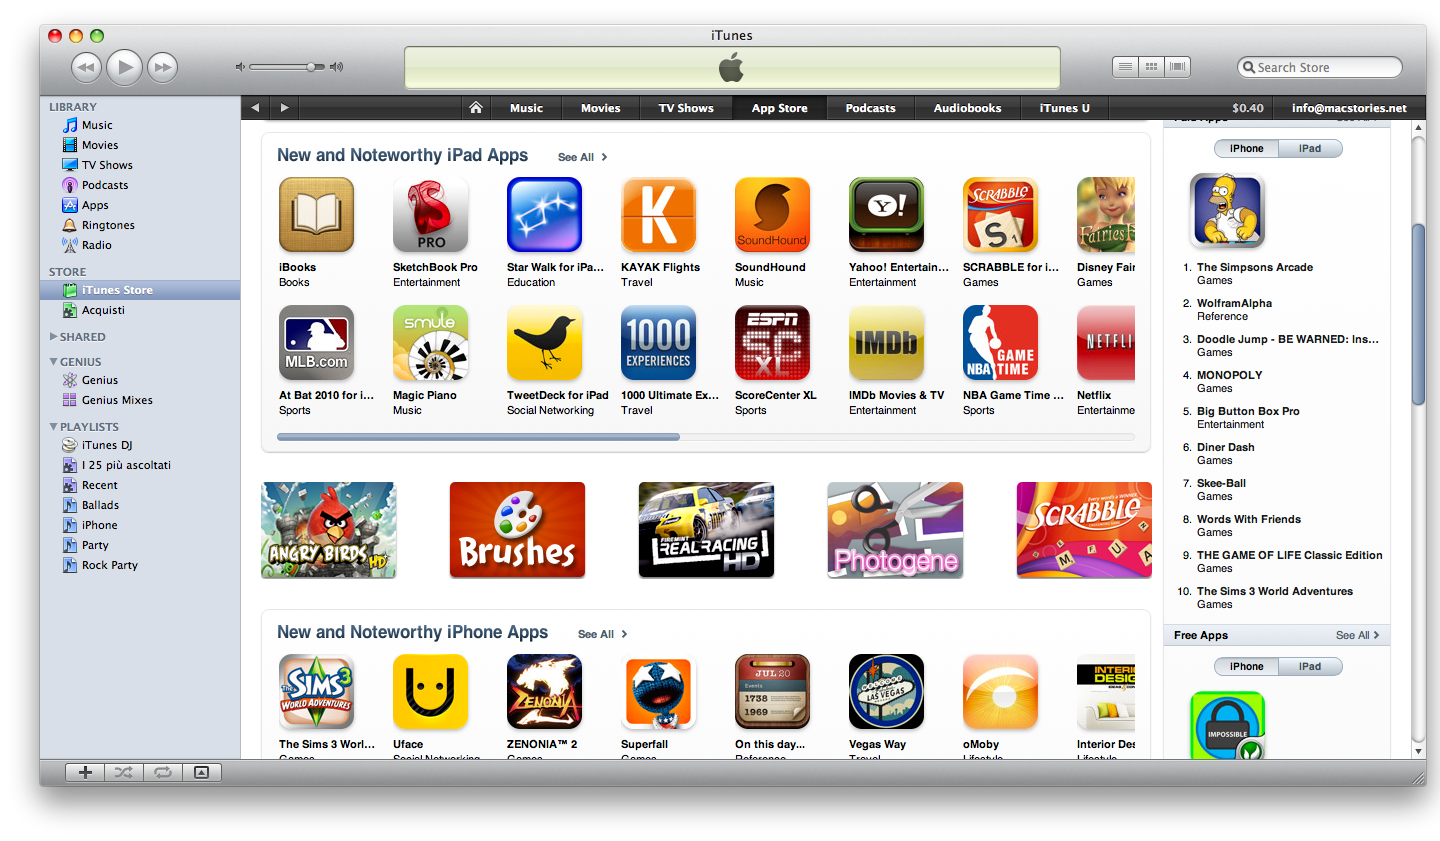 Apple S Subtle Changes To The App Store Navigation